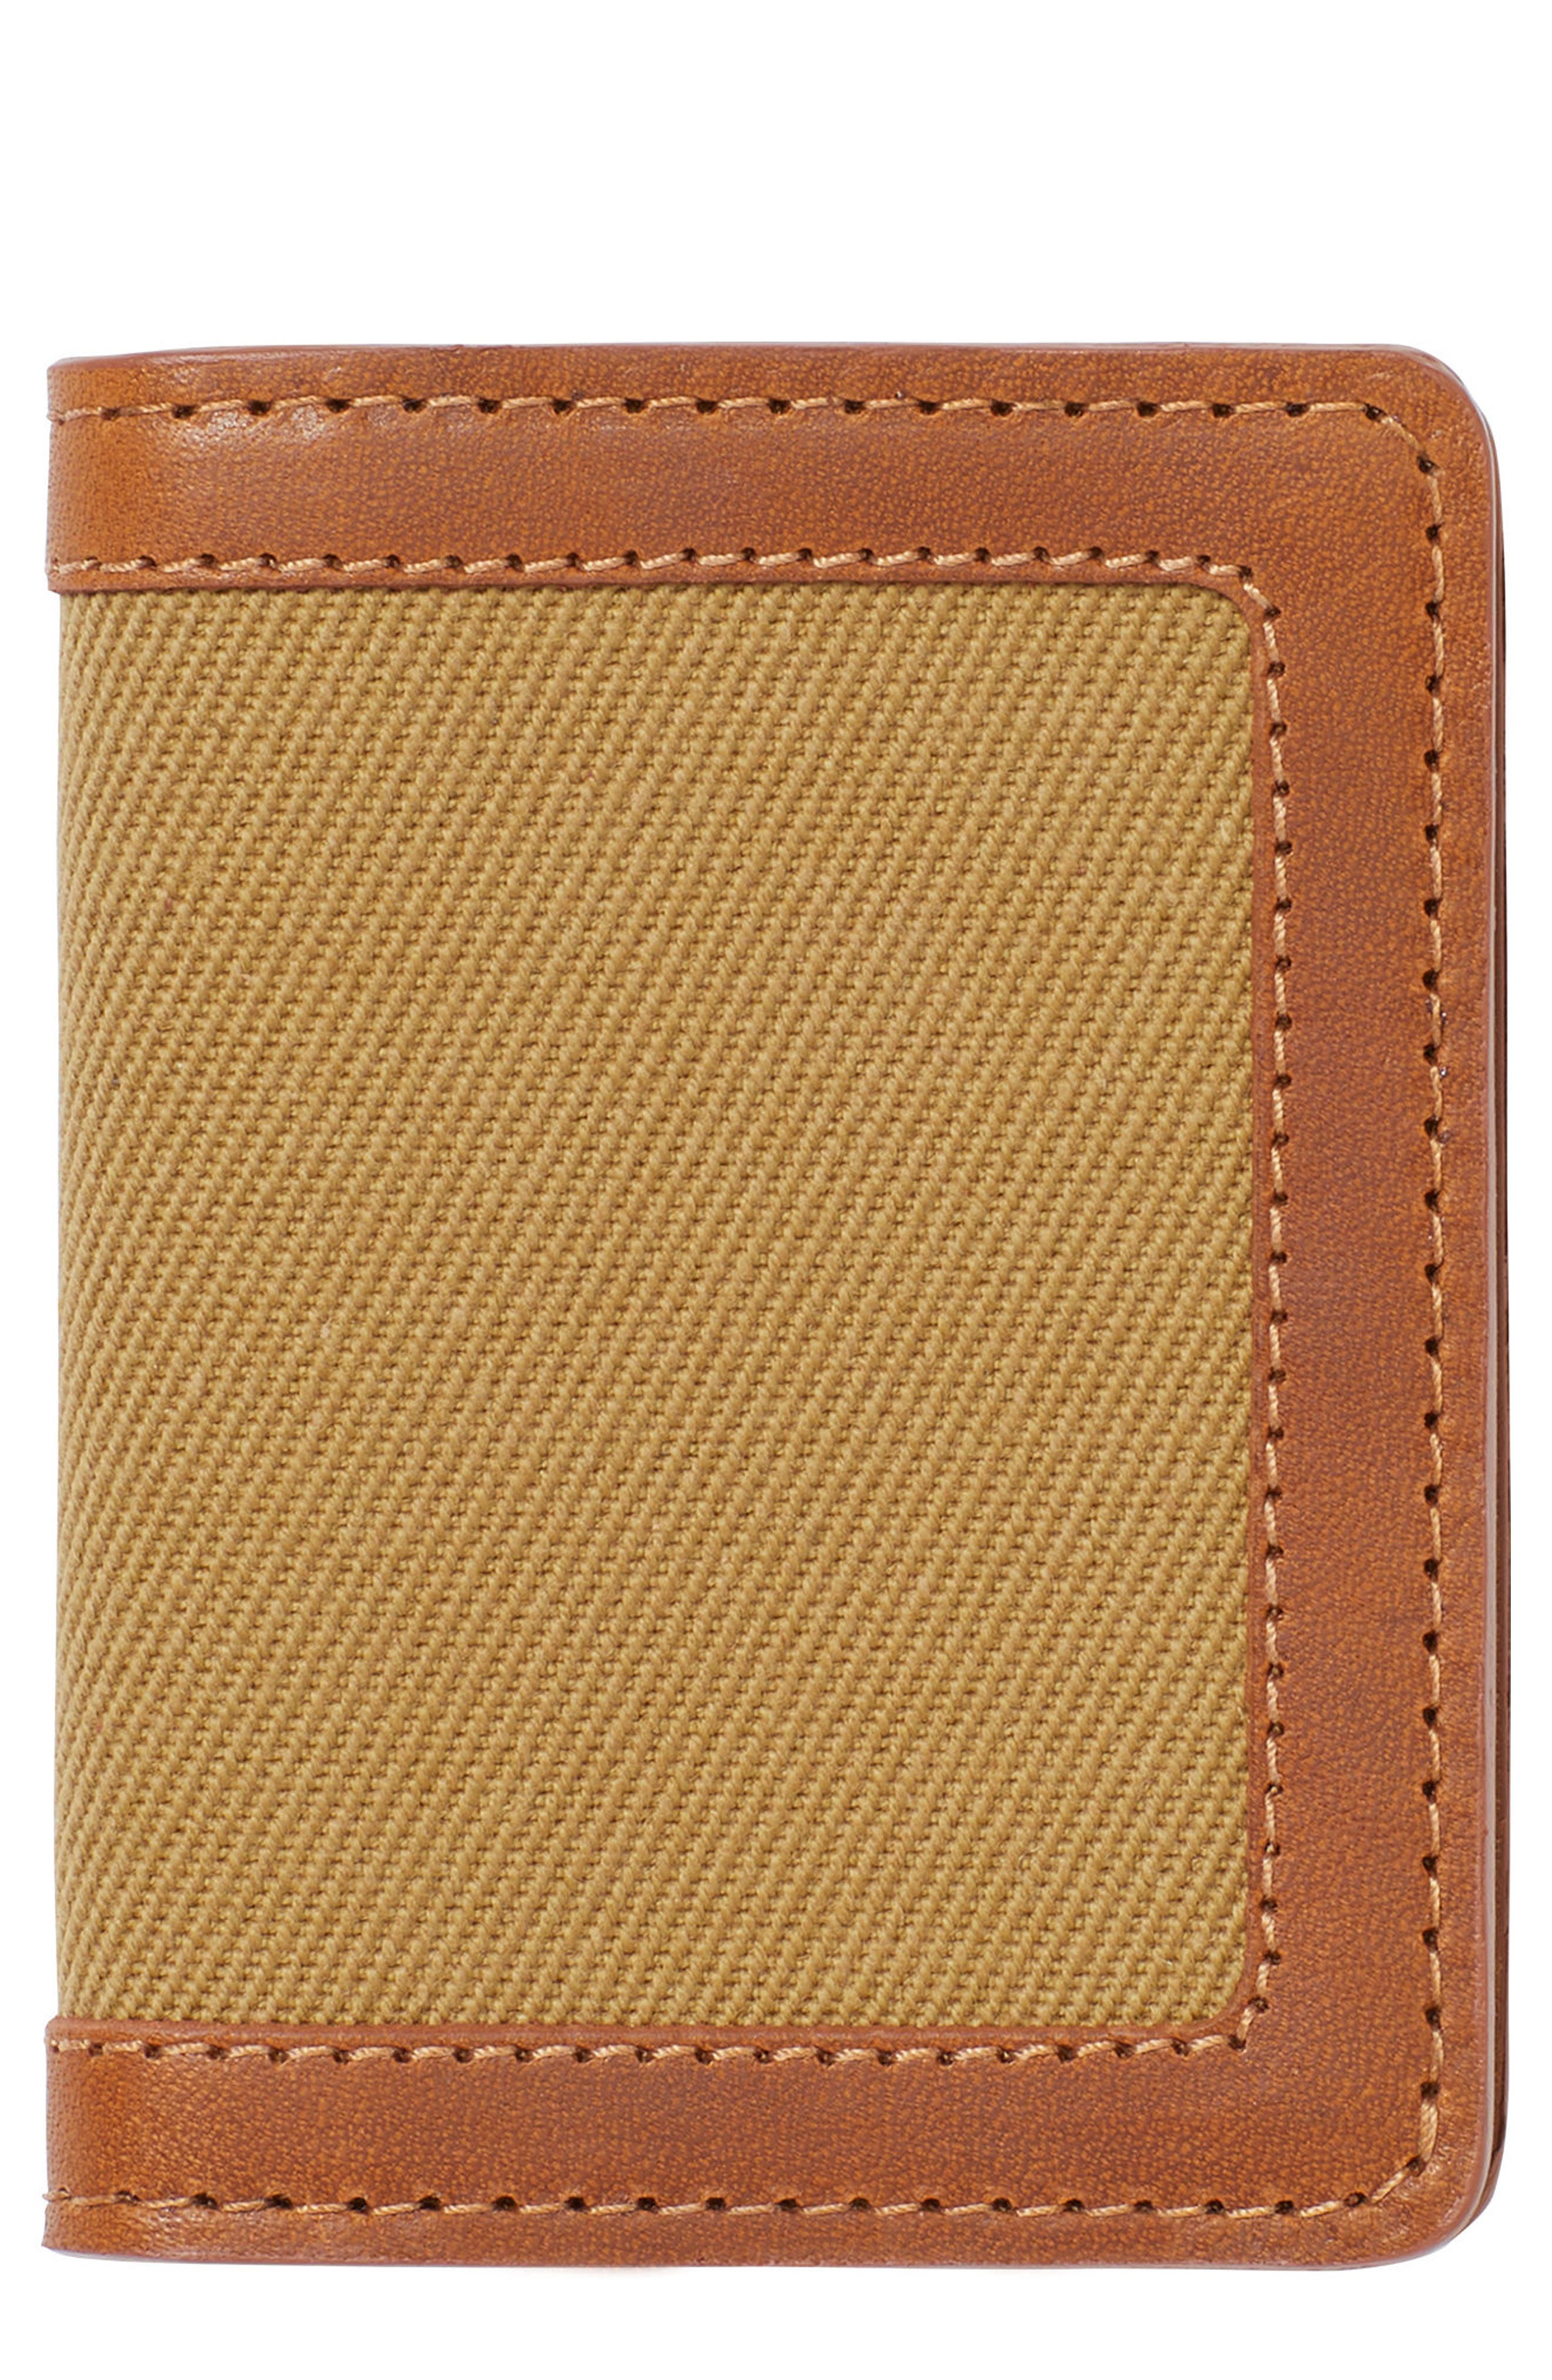 Outfitter Leather & Canvas Card Case,                             Main thumbnail 1, color,                             Tan